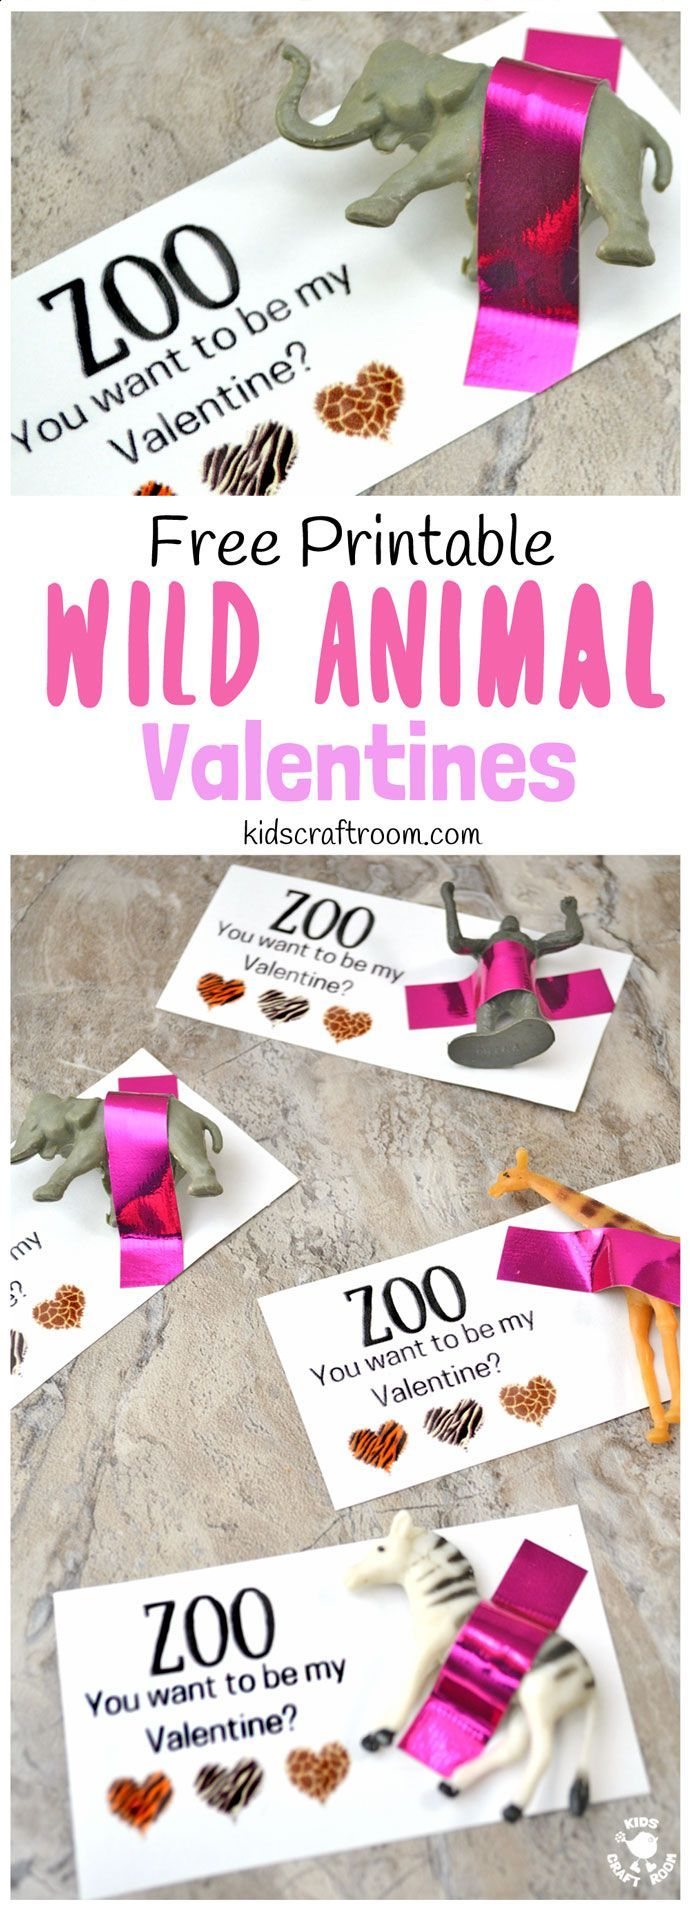 Zoo You Want to be My Valentine? Who could resist these Valentine favors? Printable Wild Animal Valentine Cardsare so easy and sweet. Print the free cards and attach a mini animal for a Valentine gift everyone will love. A great Valentine idea for friends and loved ones big and small!